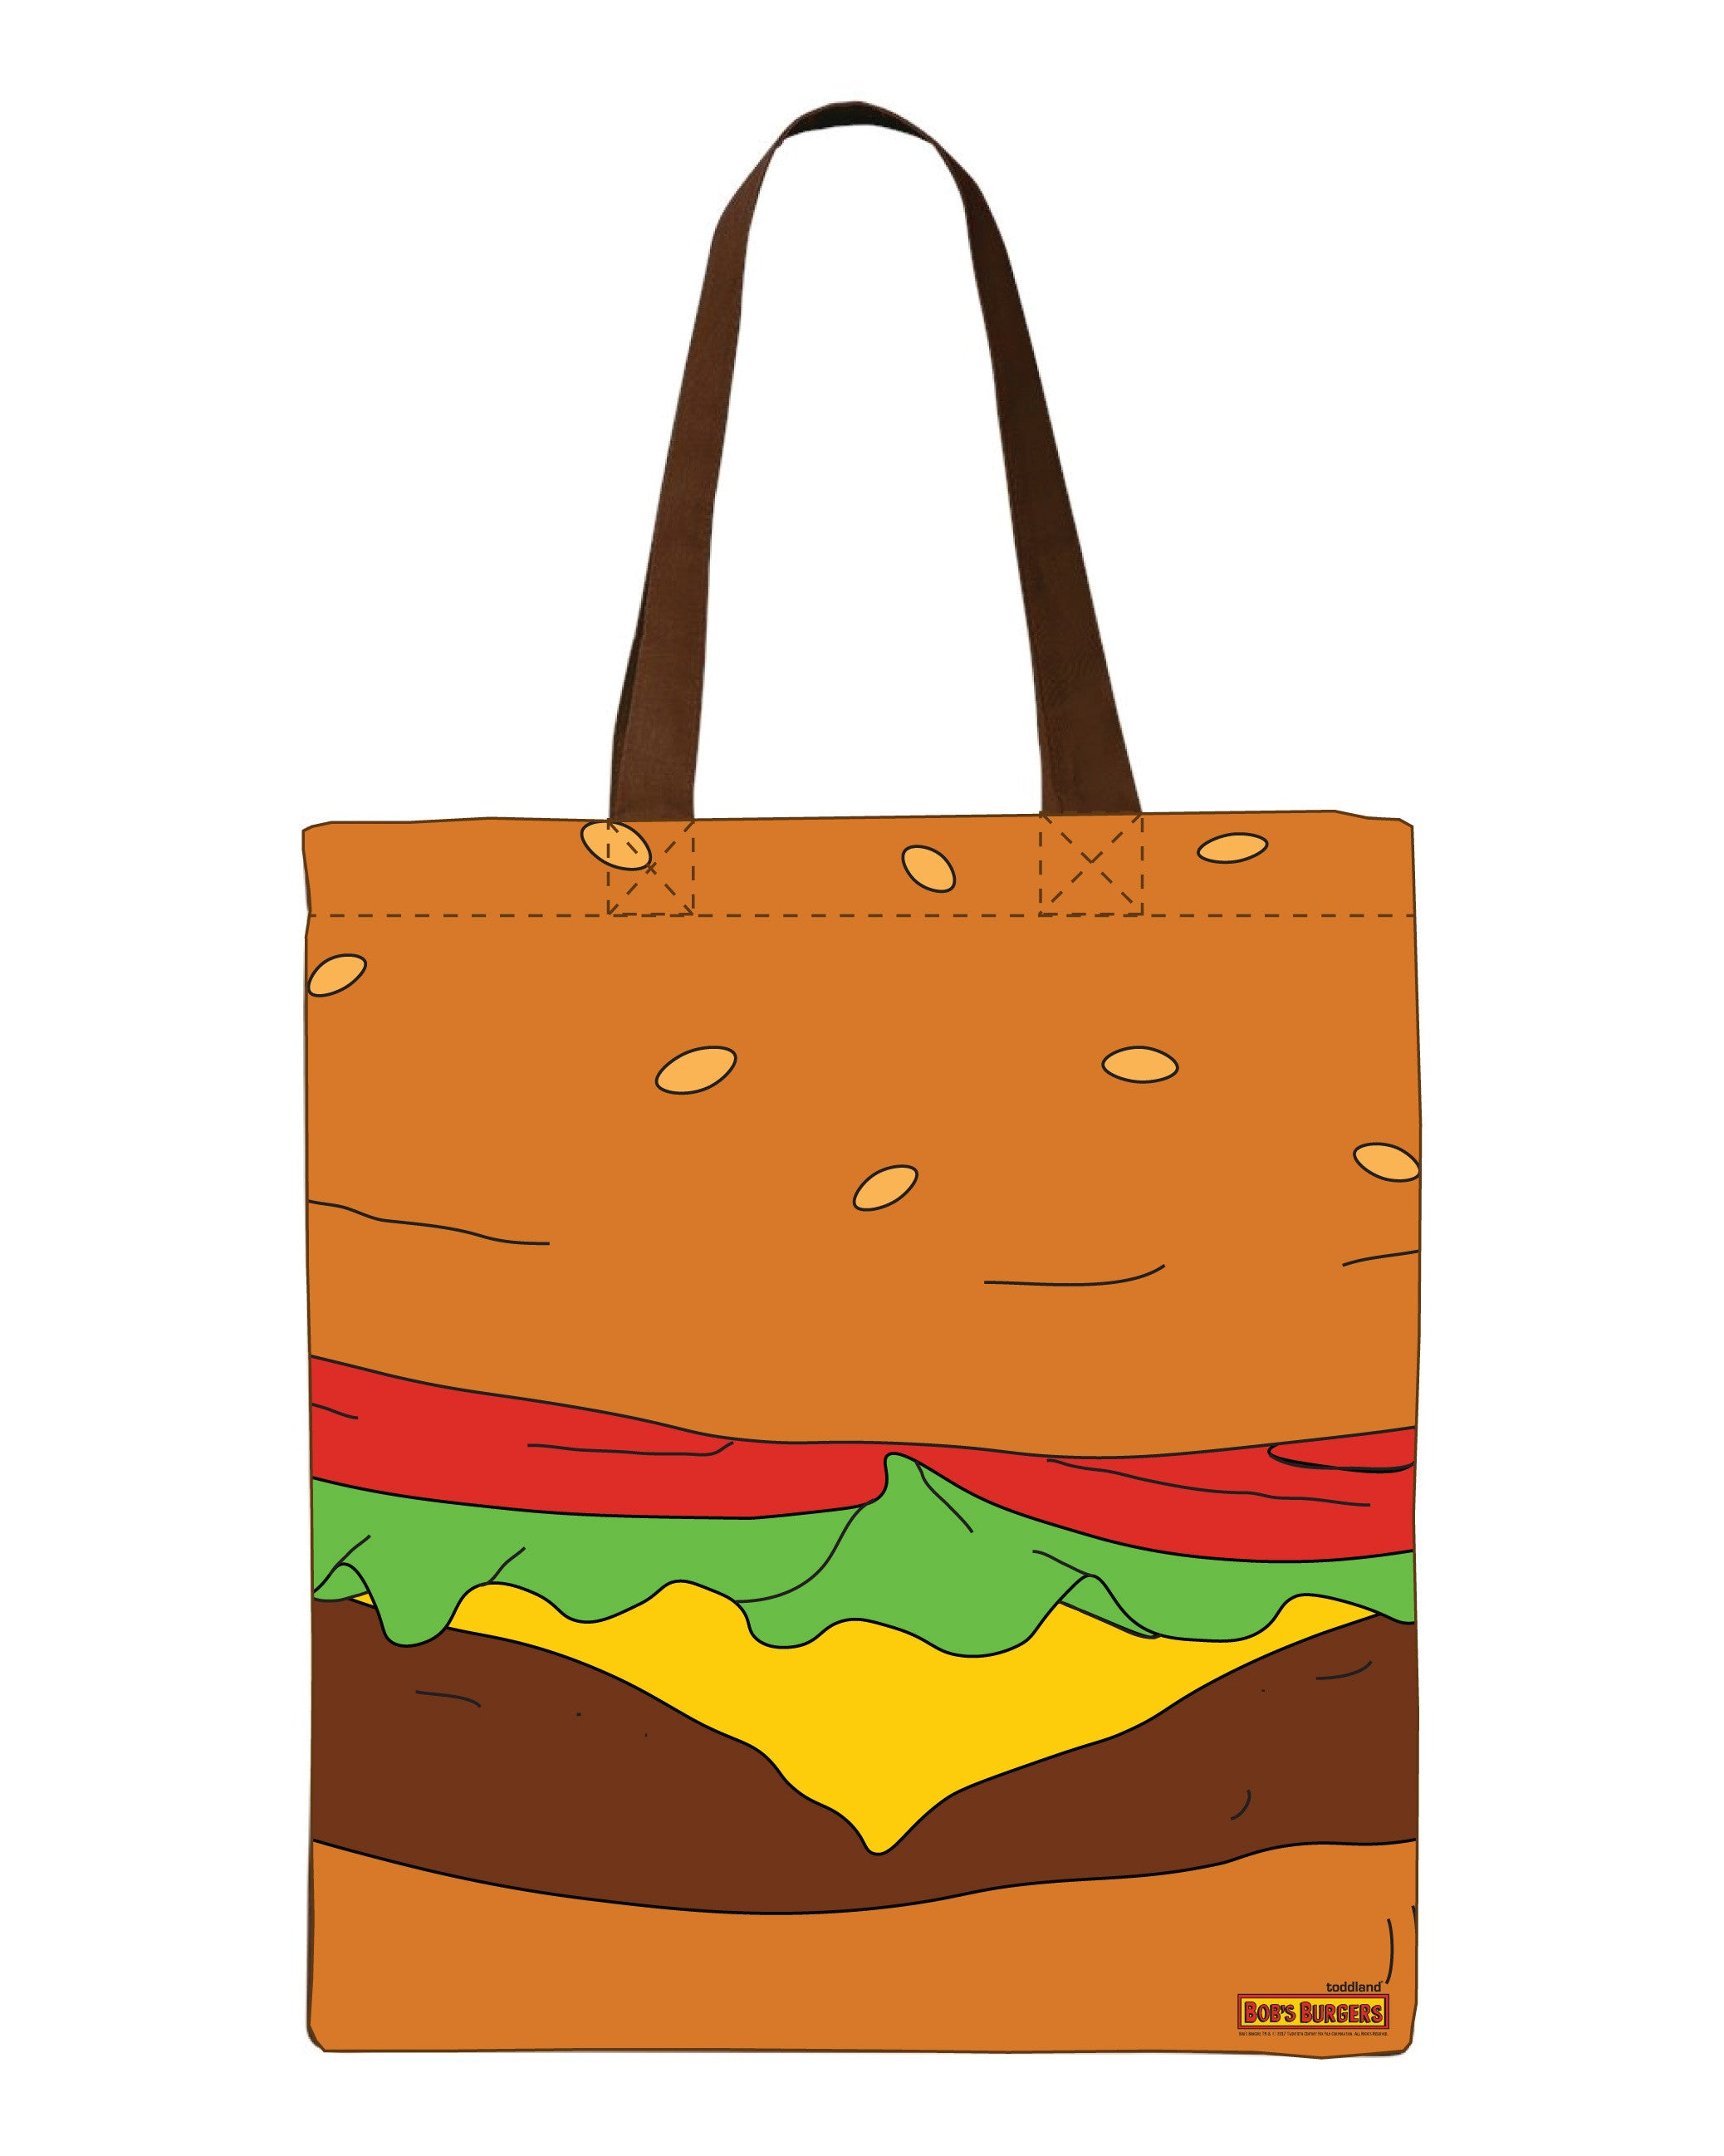 f9180d7f69 SDCC 2017 - Burger Tote - edition of 250pcs (SDCC pickup only)